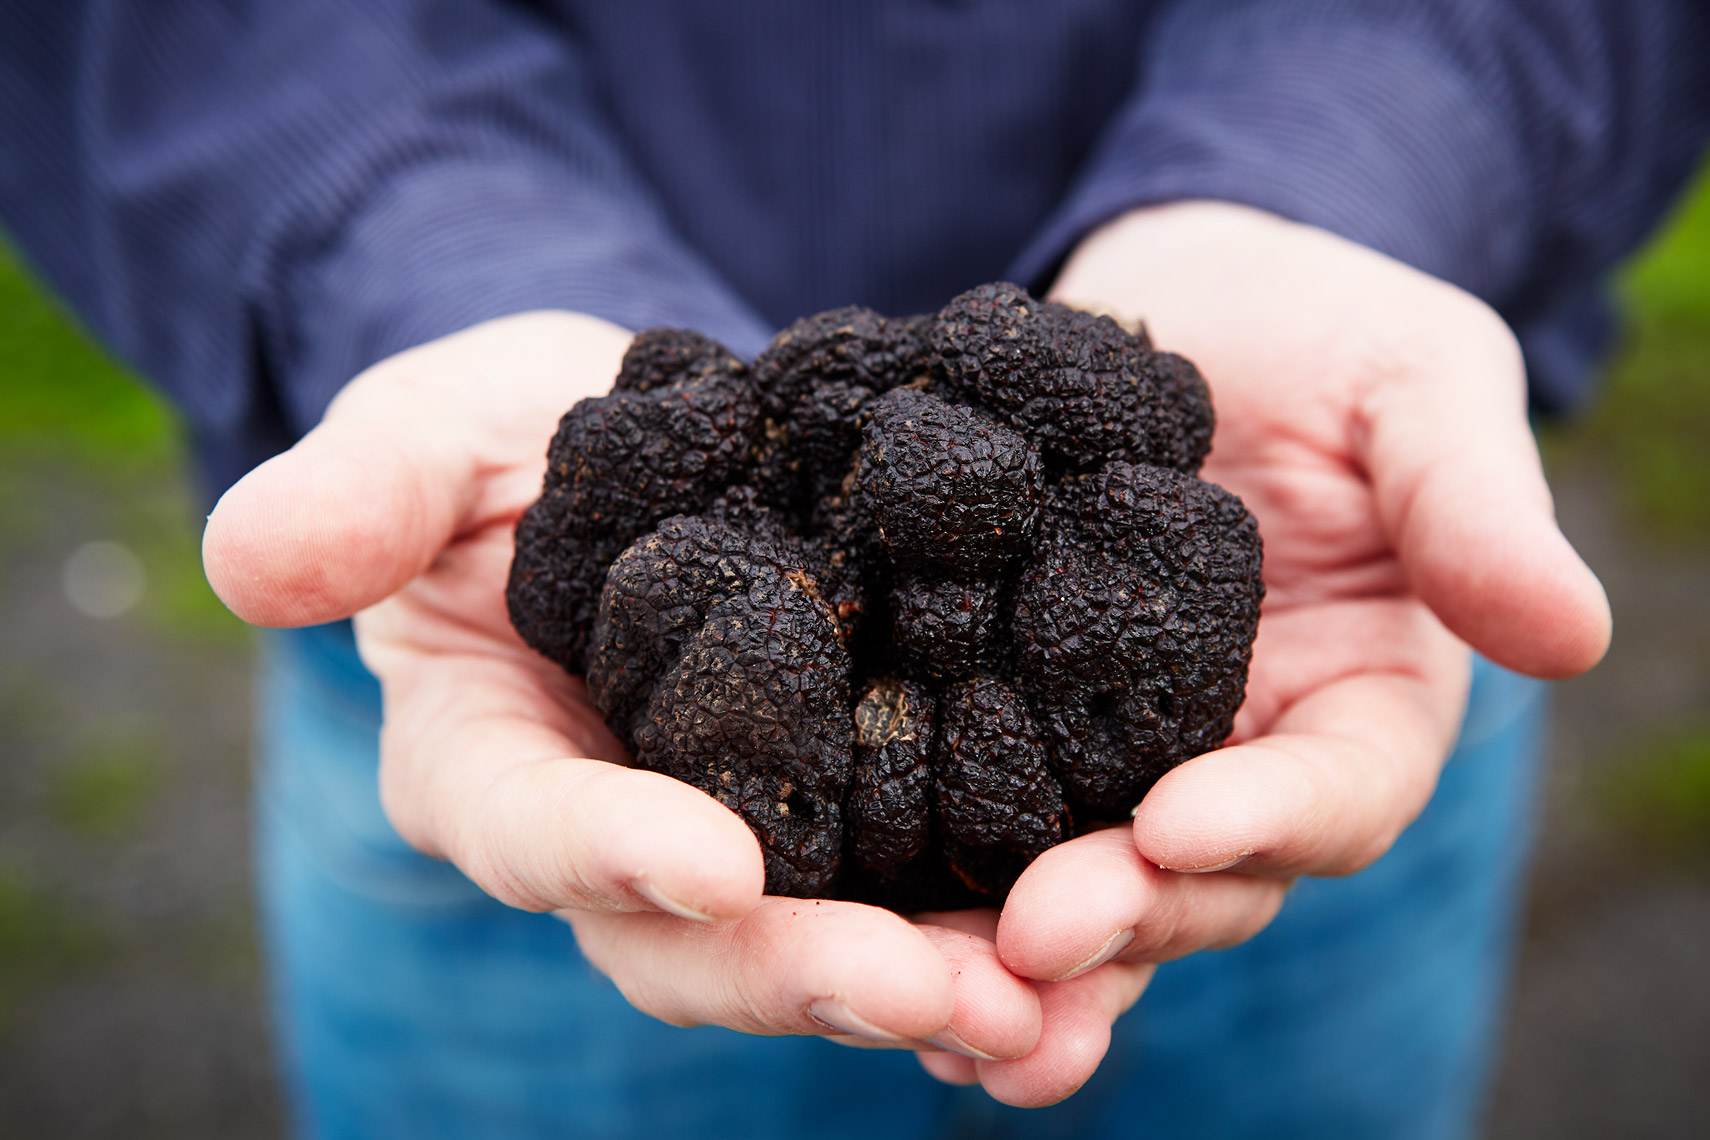 AlanCampbellPhotography large black truffle in hands